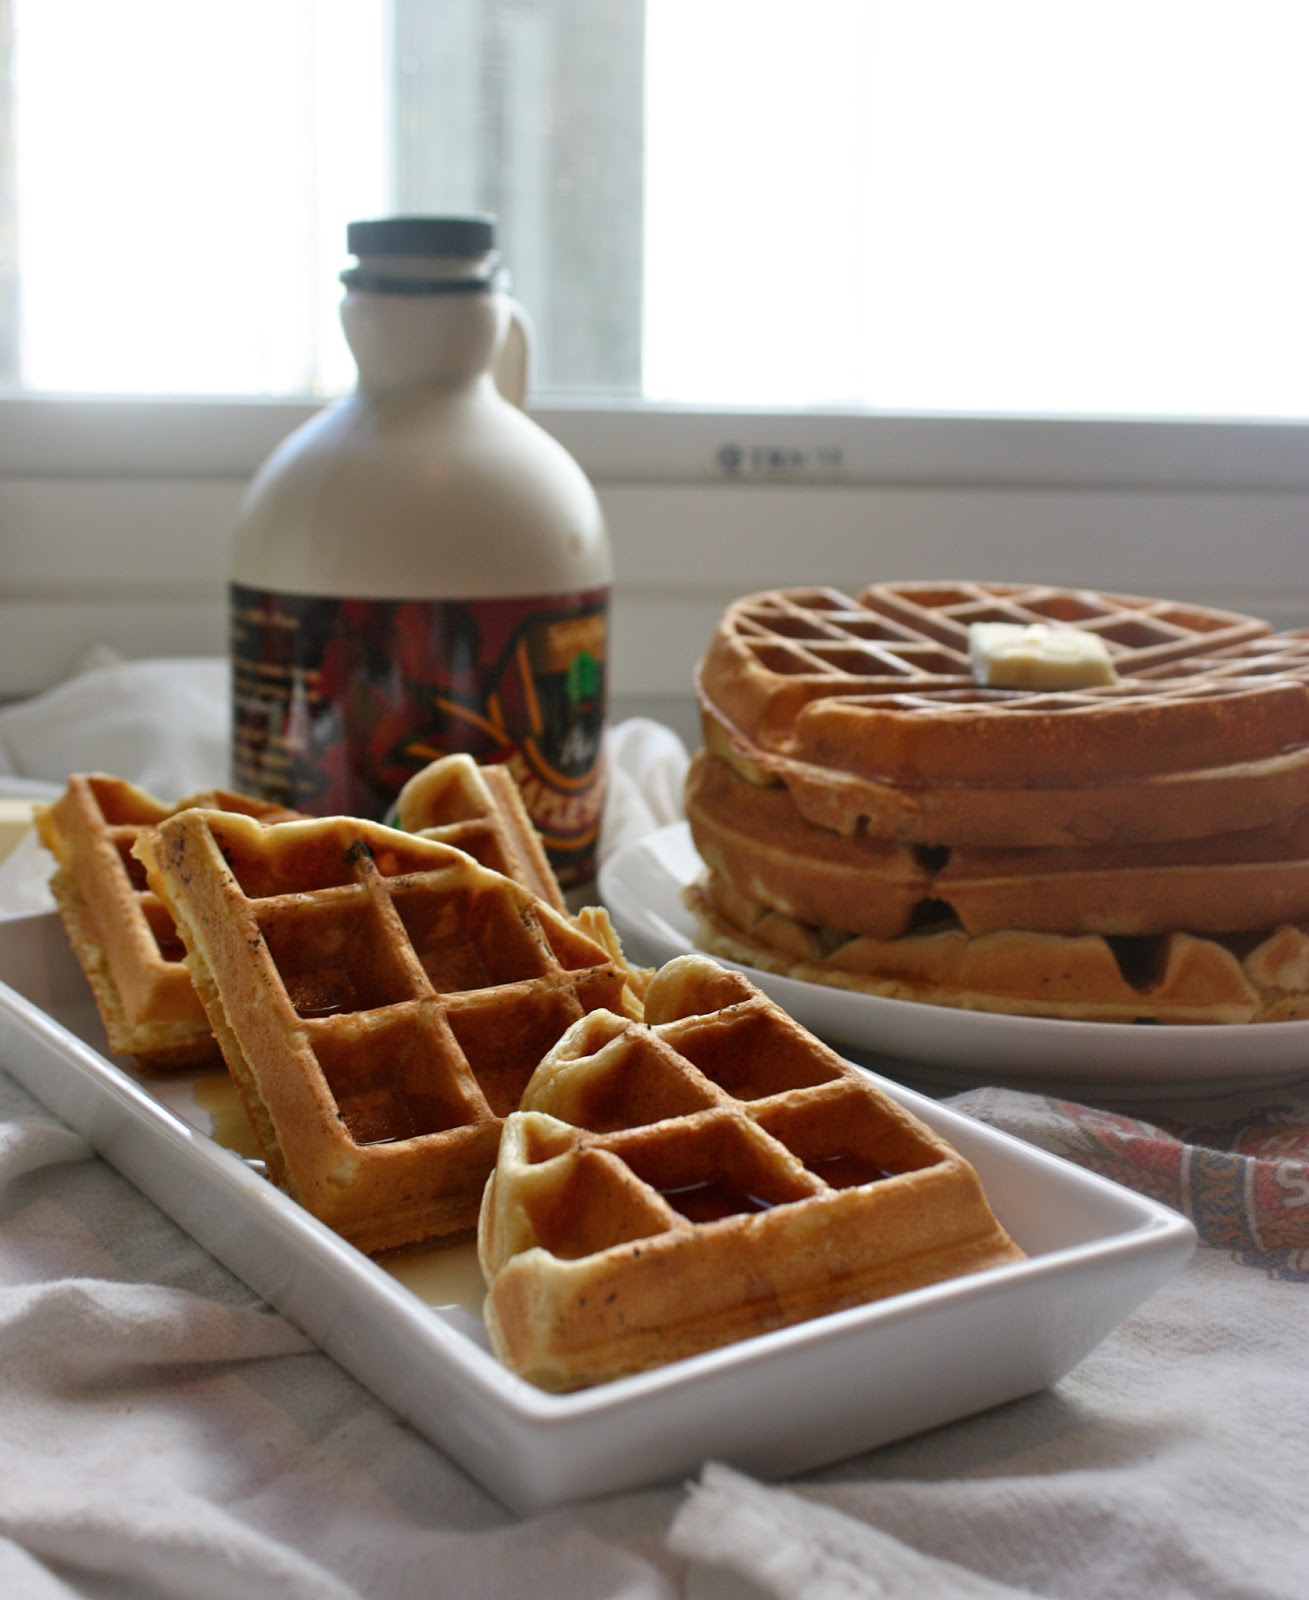 ... Aretha Frankensteins' (what a name!) Waffle's of Insane Greatness...